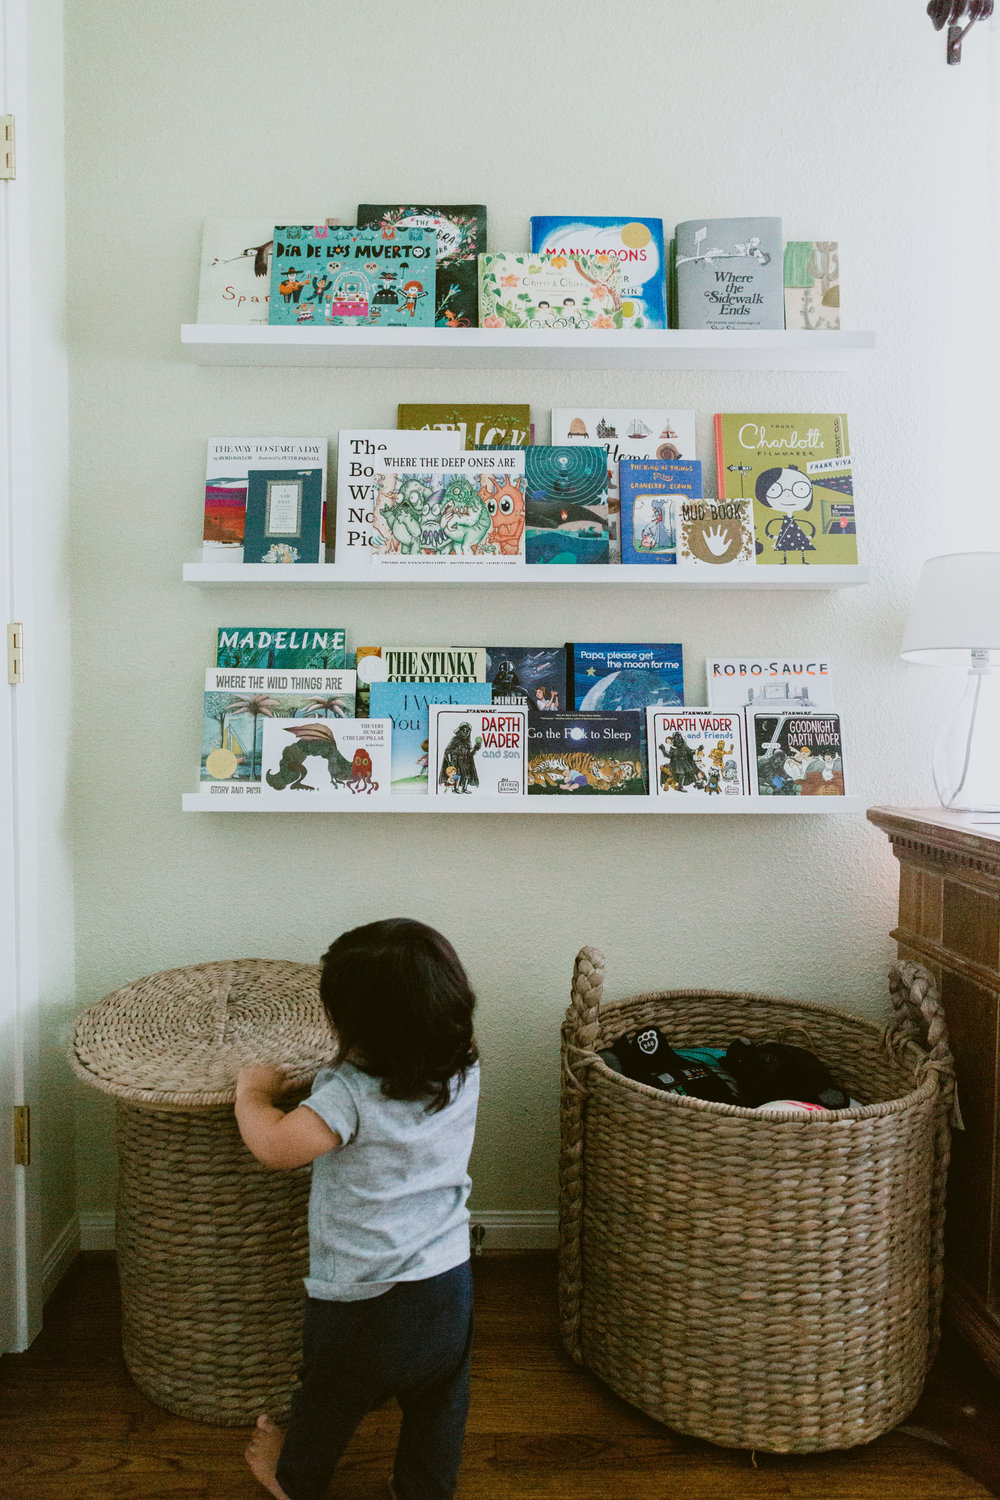 Sebastian's little library keeps growing.